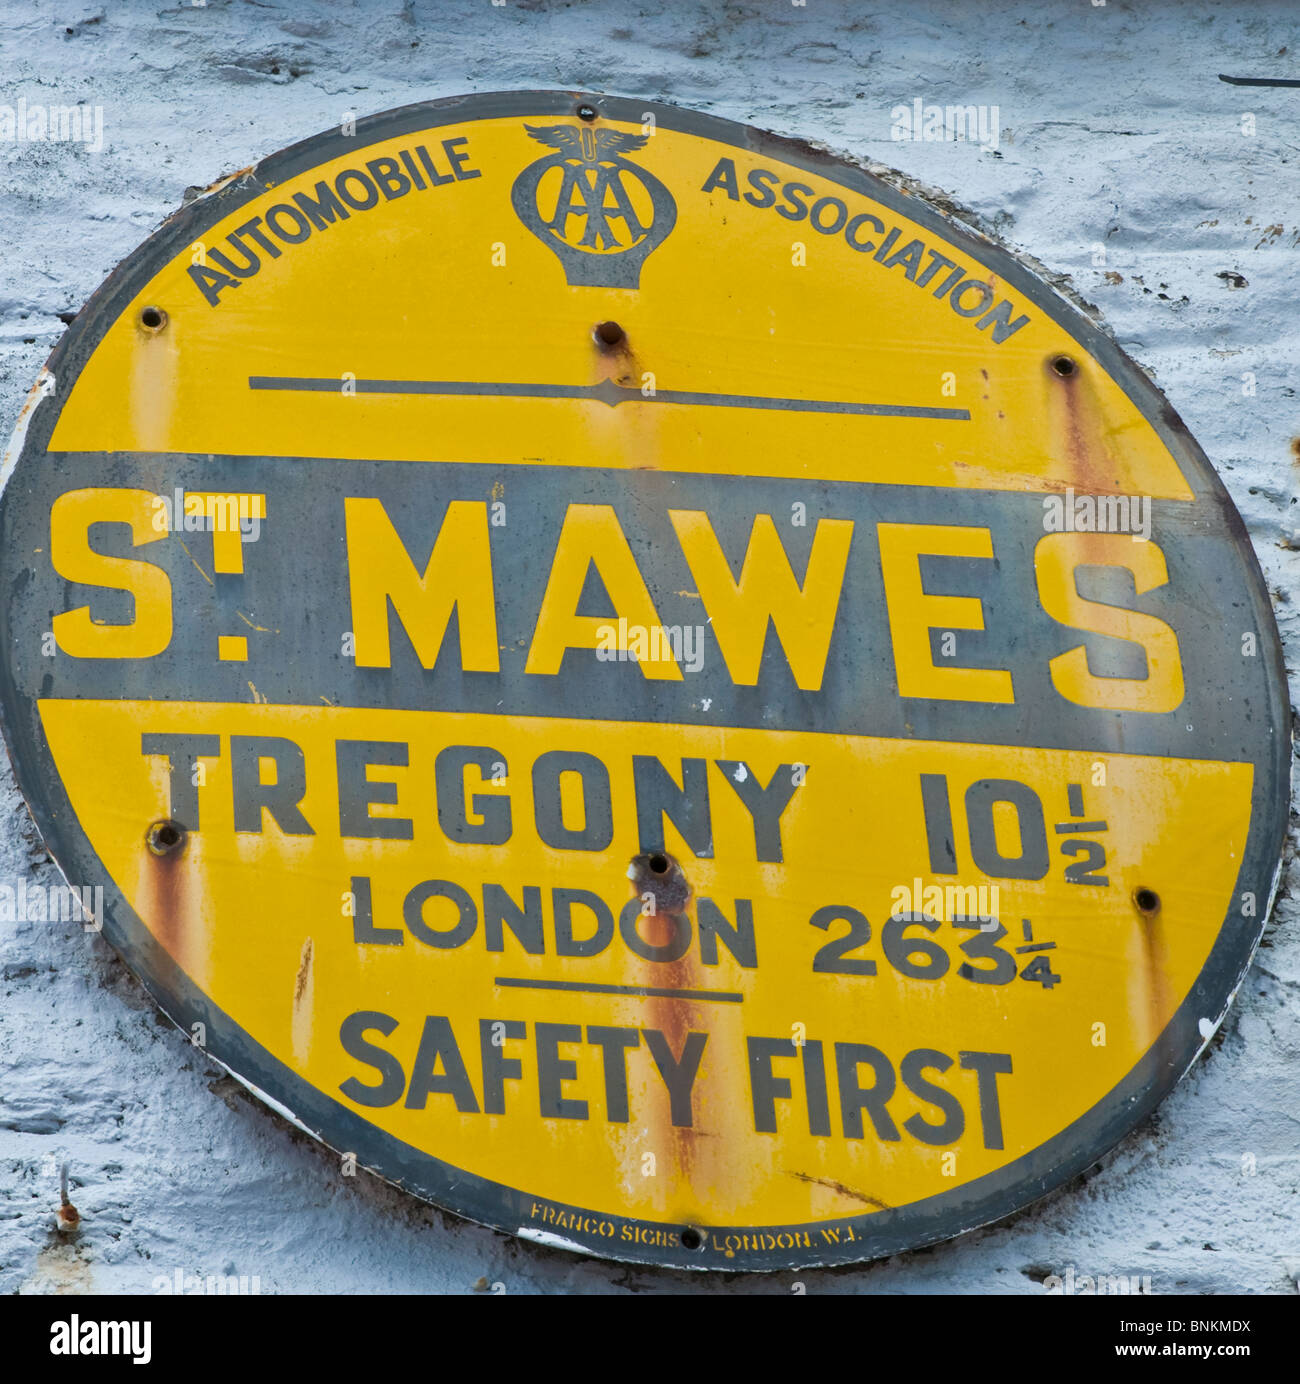 Old AA distance marker at St Mawes Cornwall England - Stock Image